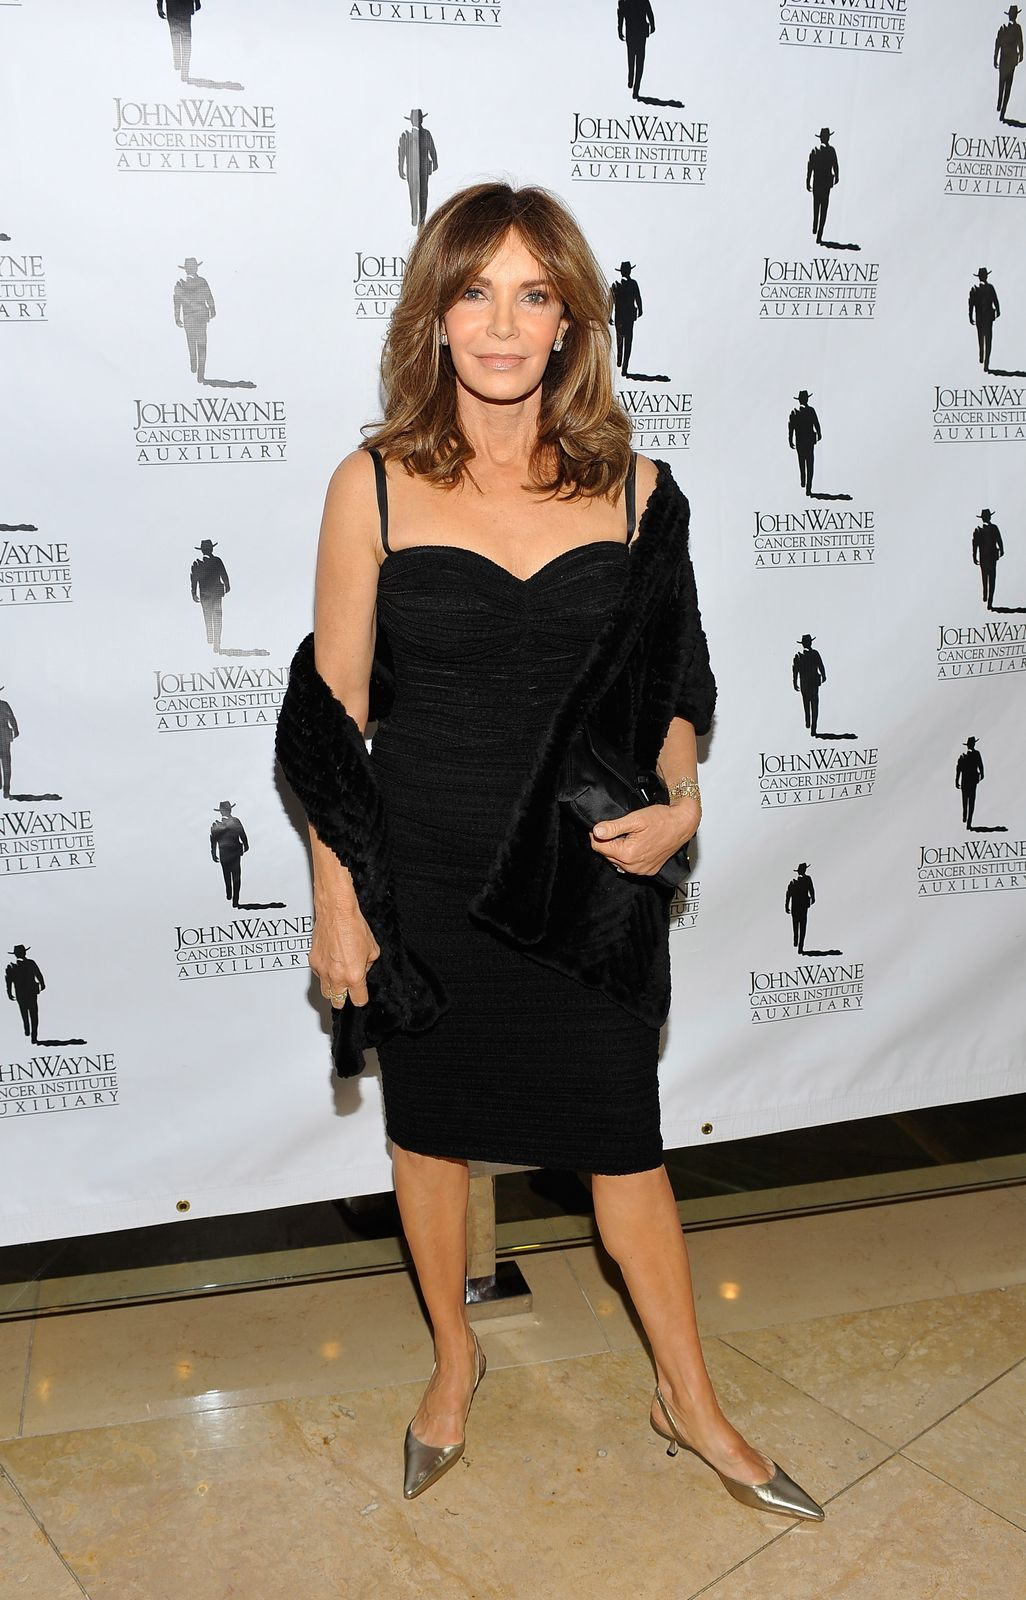 Jaclyn Smith at the John Wayne Cancer Institute's 26th Odyssey Ball & Show on April 9, 2011 | Photo: Getty Images